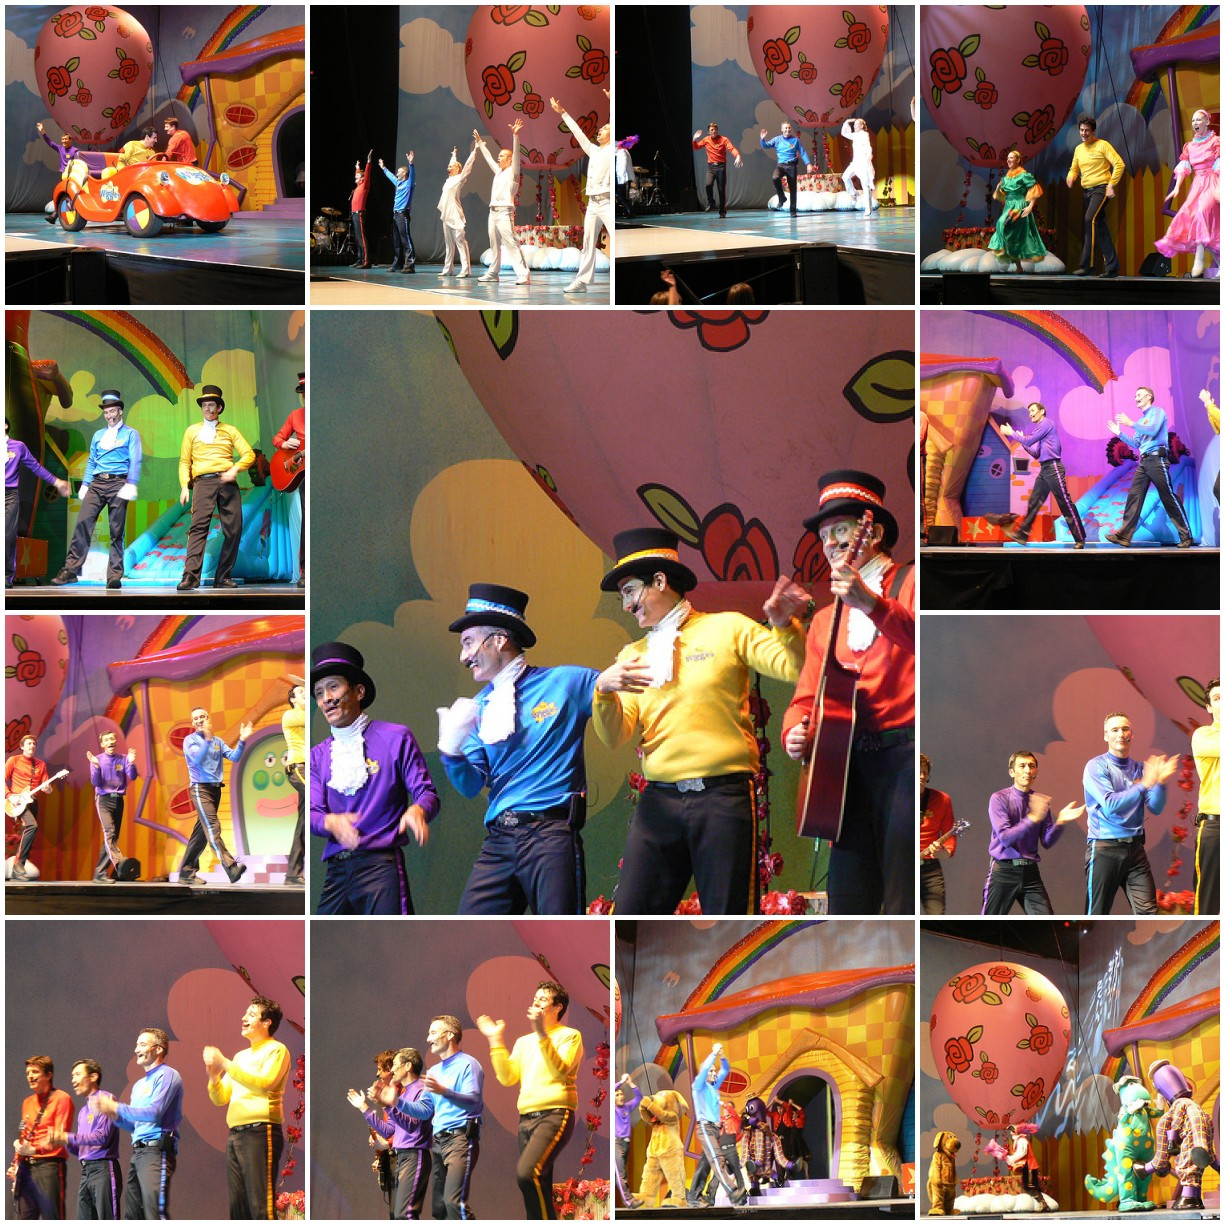 Lots of Wiggles & Wiggly Dancers Mosaic